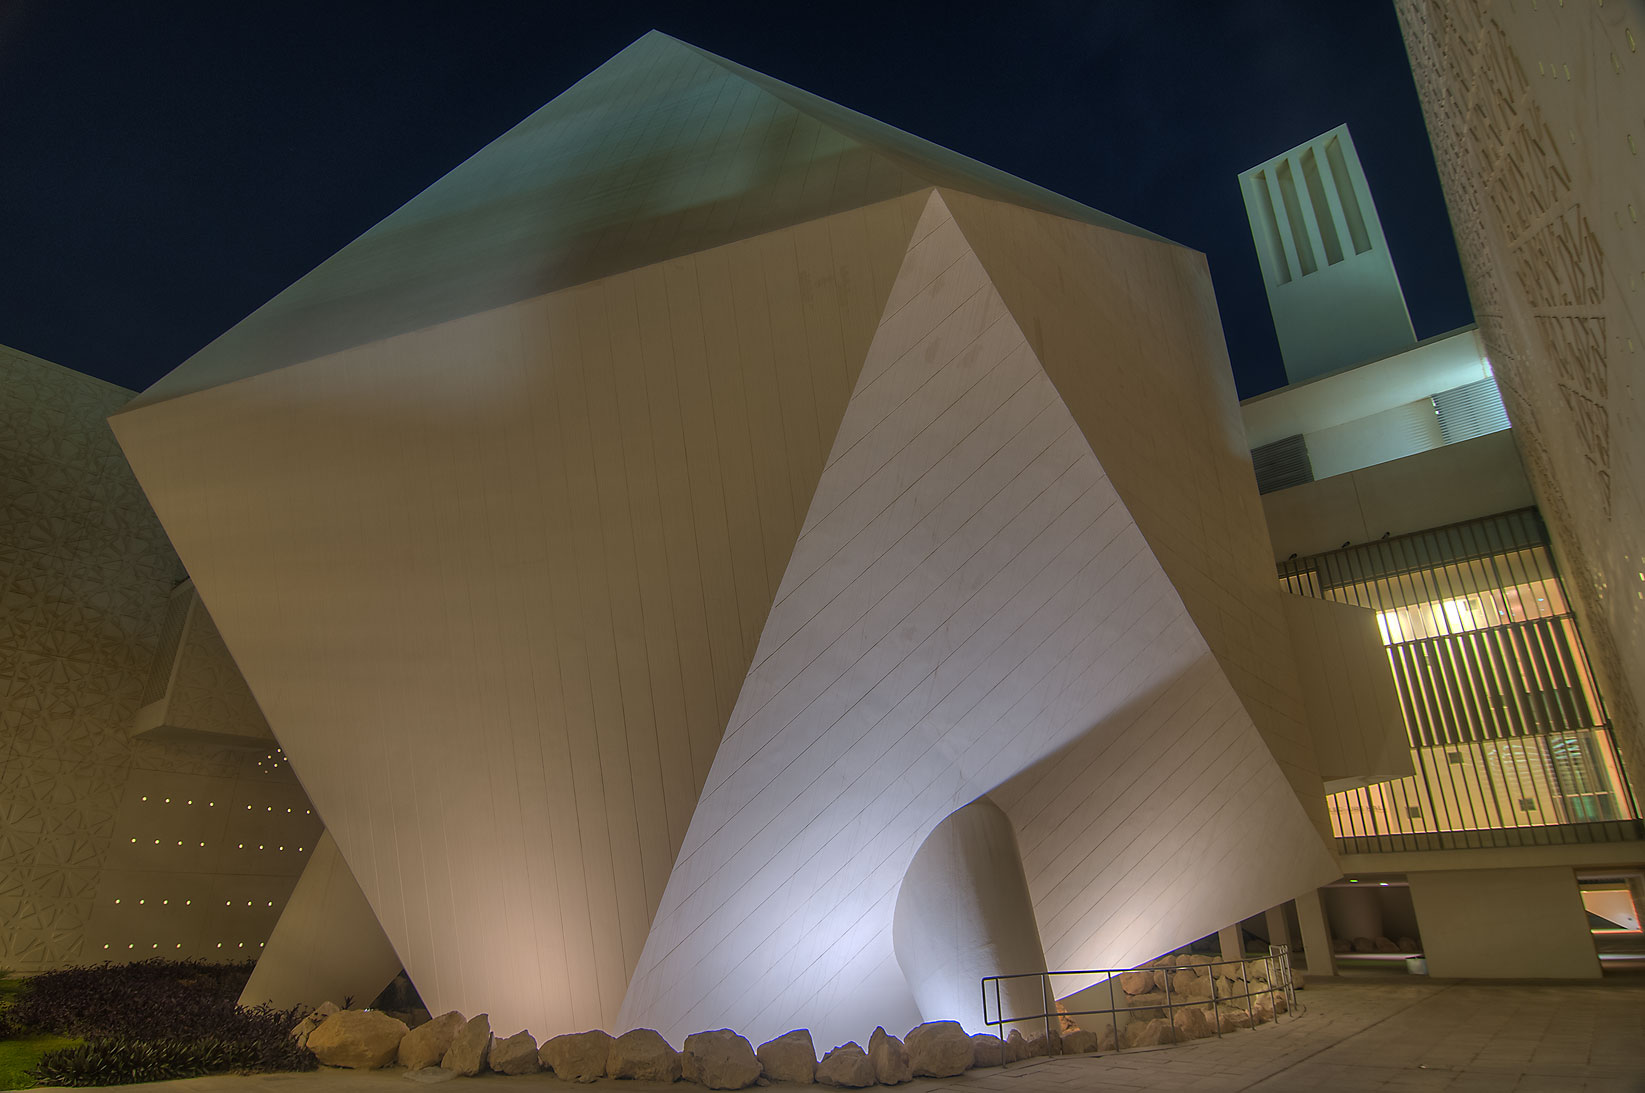 Icosahedron lecture hall of Weill Cornell Medical...City, Rayyan area. Doha, Qatar